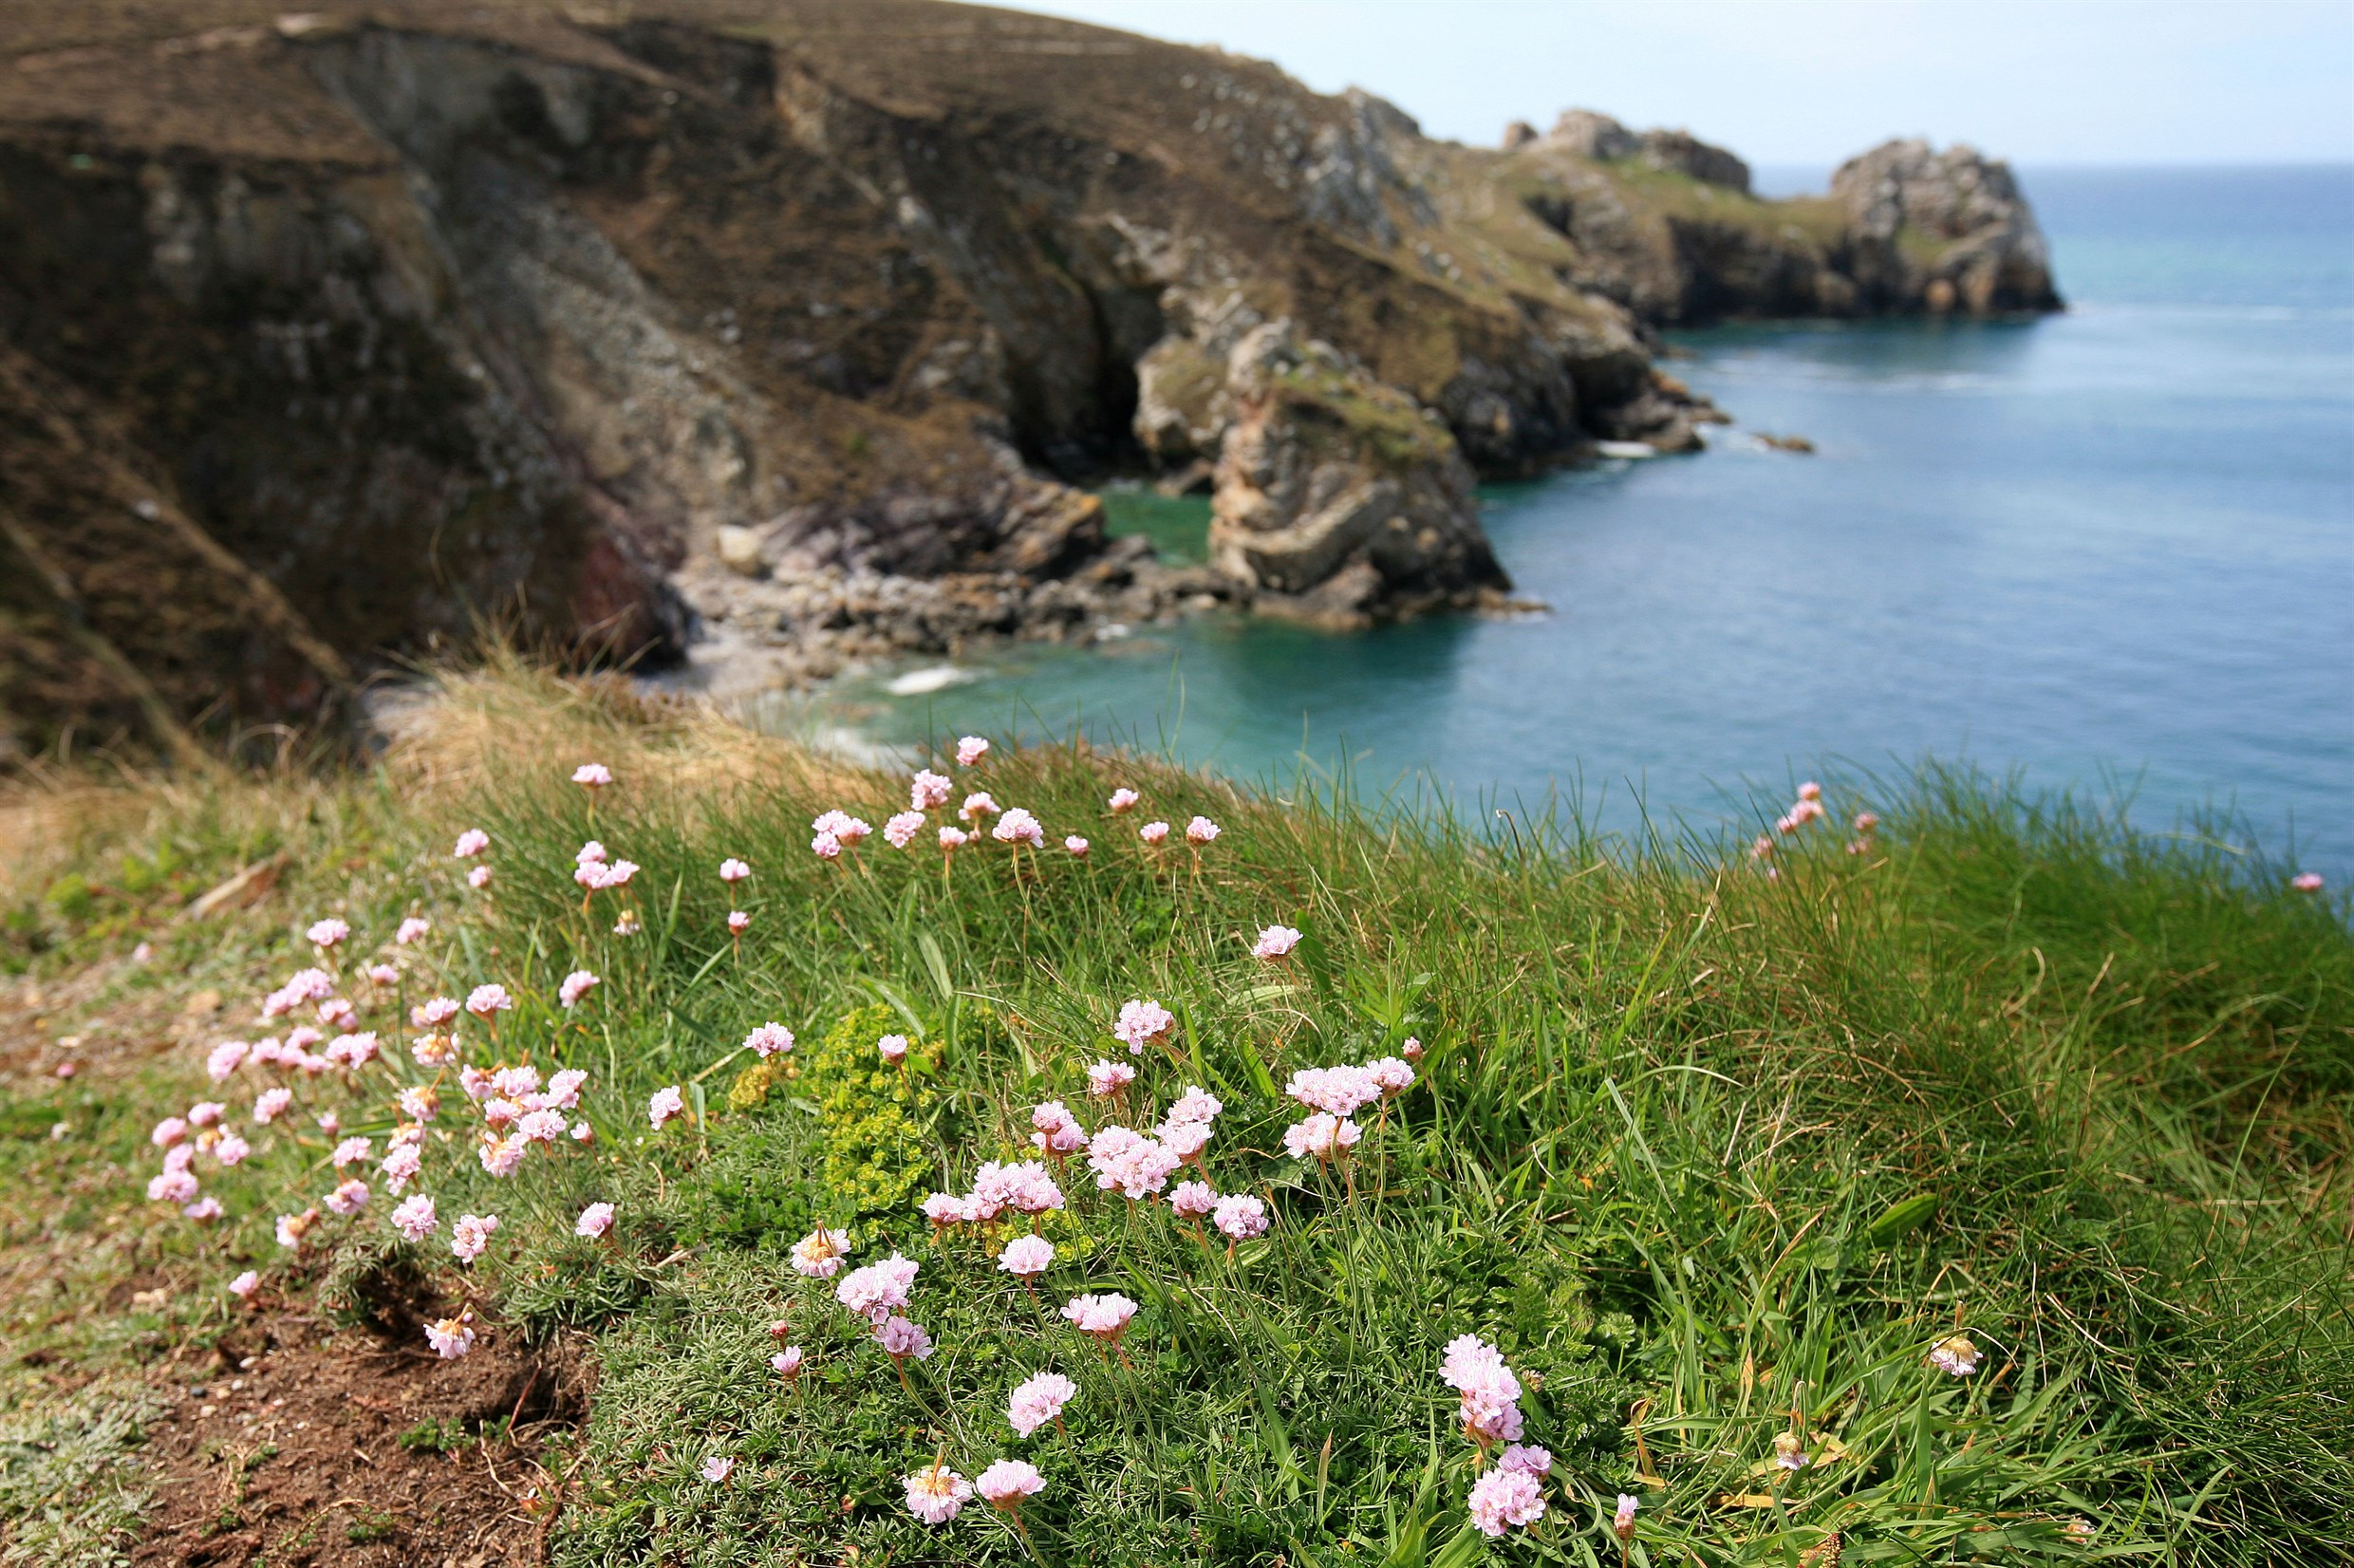 France, Bretagne, Finistere, presqu'ile de crozon, pointe de dinan, rochers, pointe, vegetation, armeries maritimes,